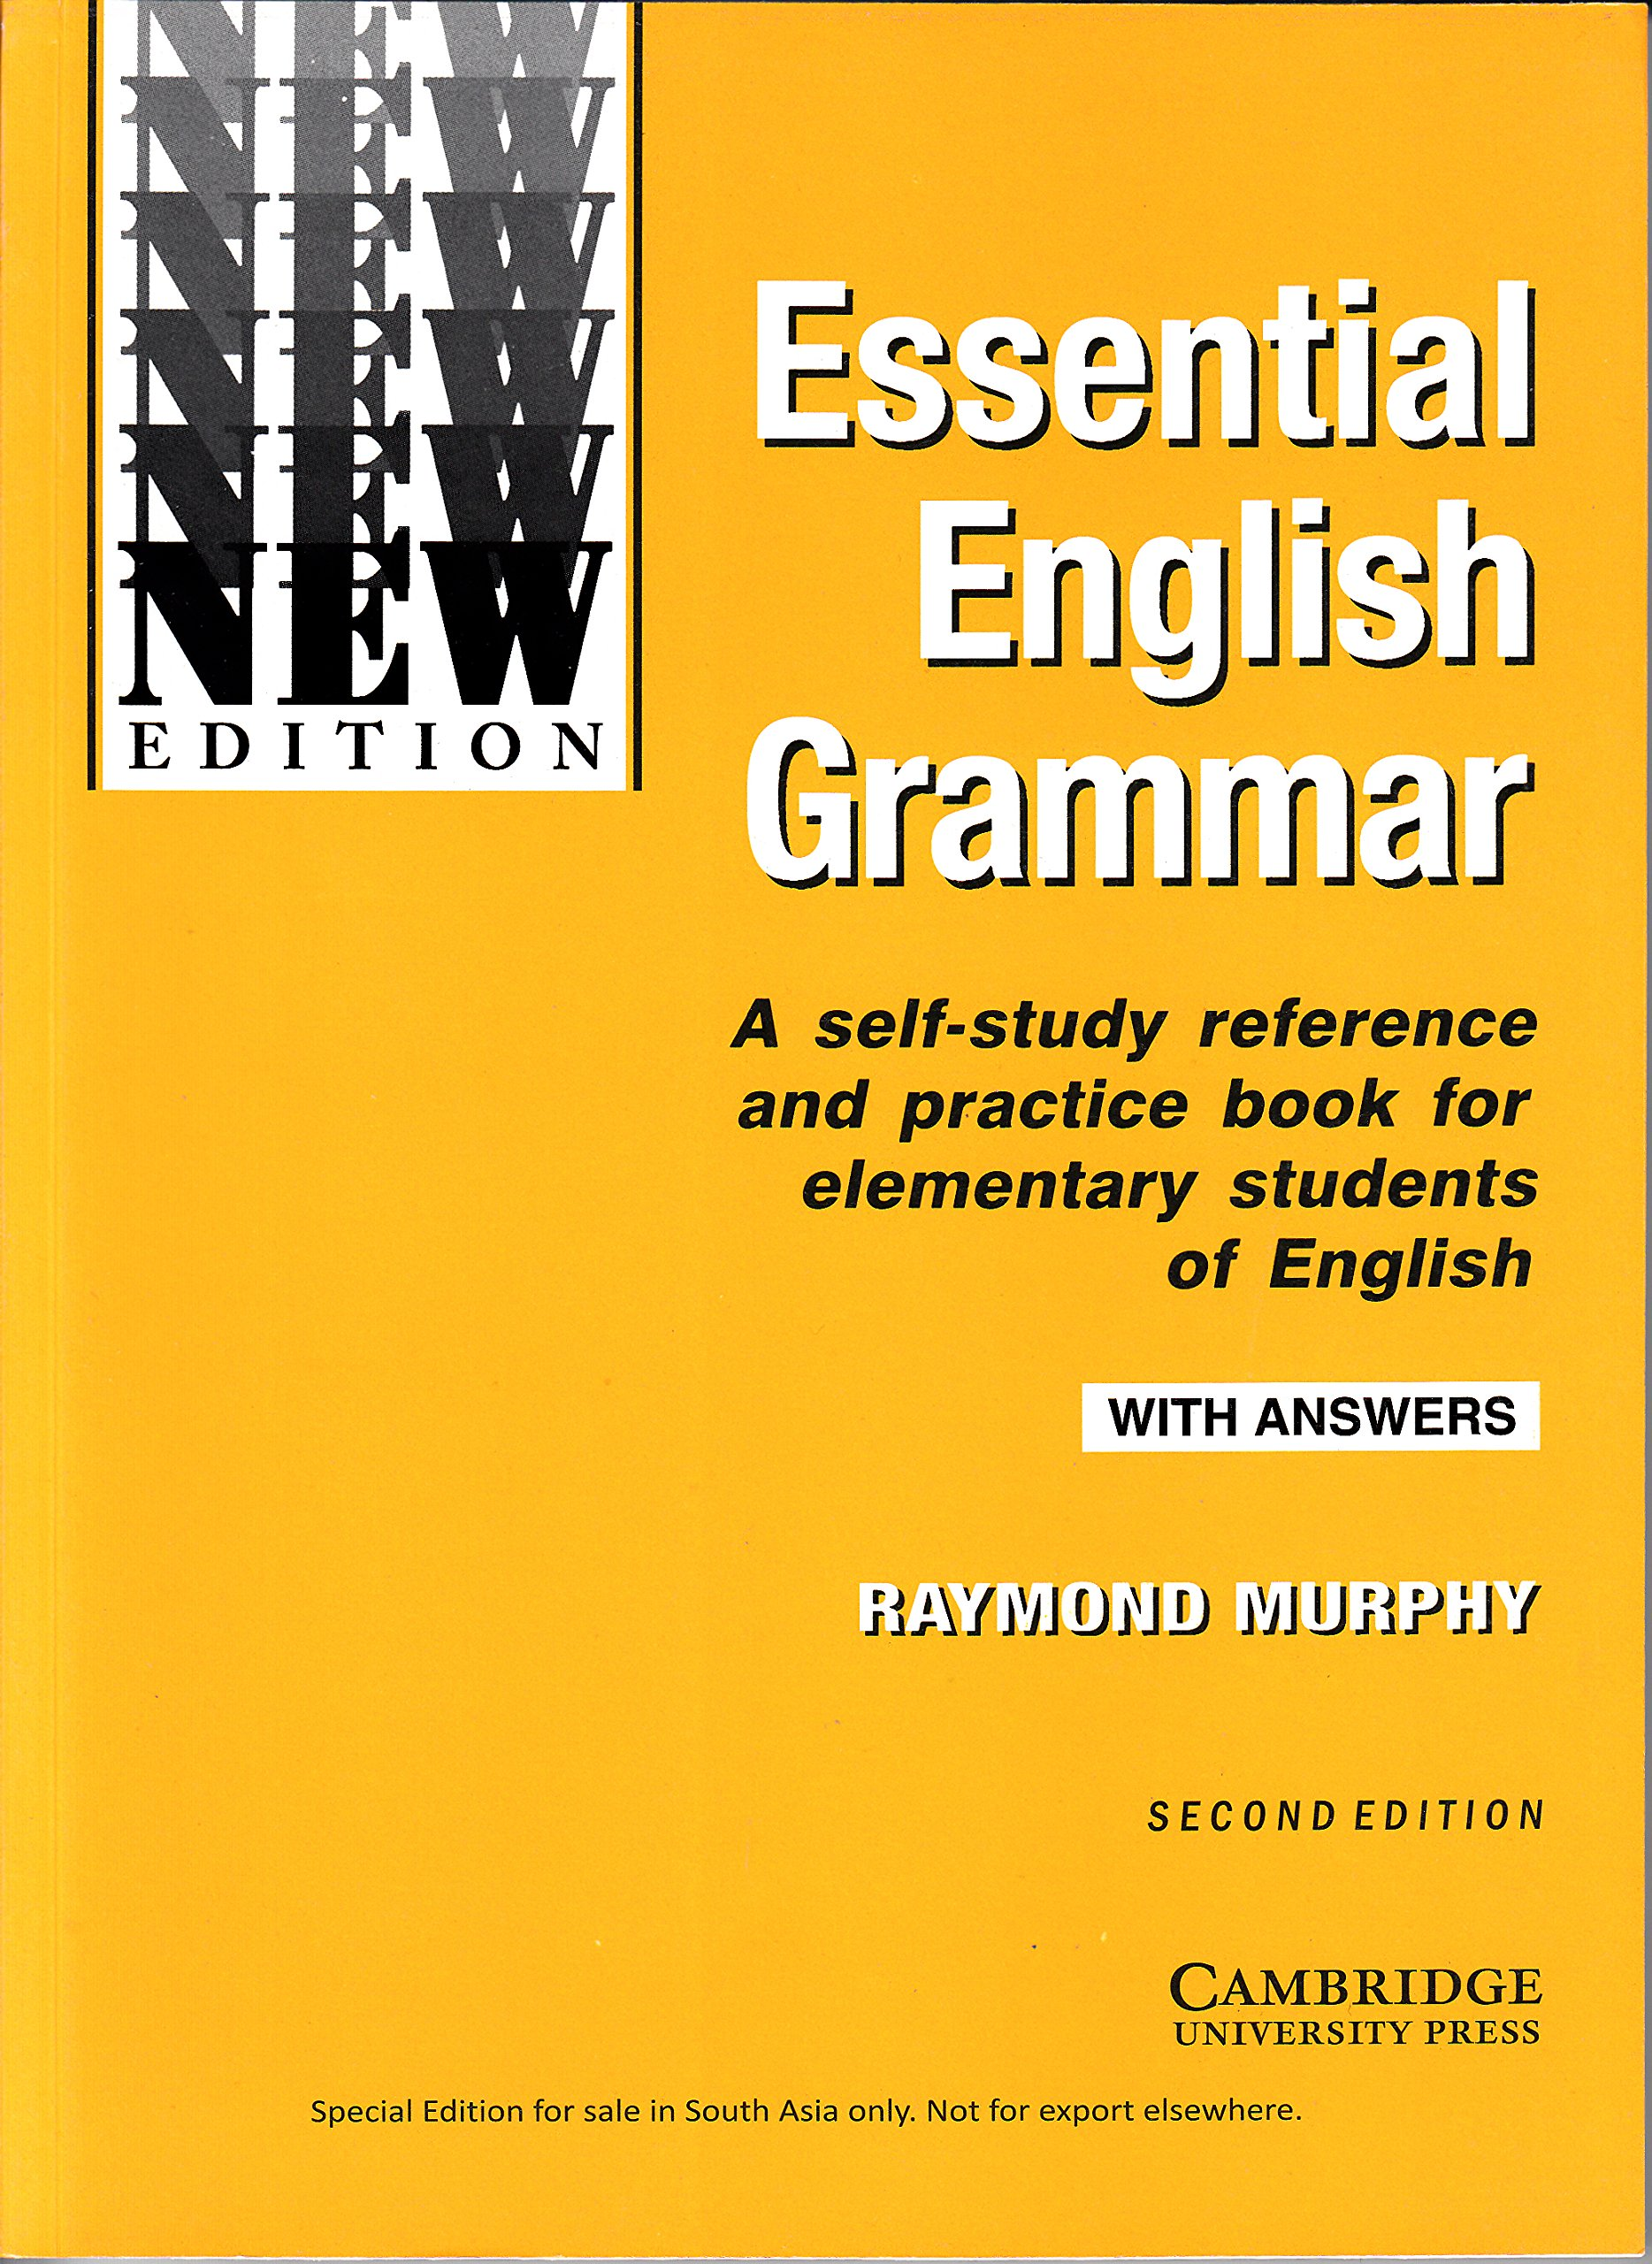 Worksheet Elementary English Grammar buy essential english grammar with answers book online at low prices in india reviews rati